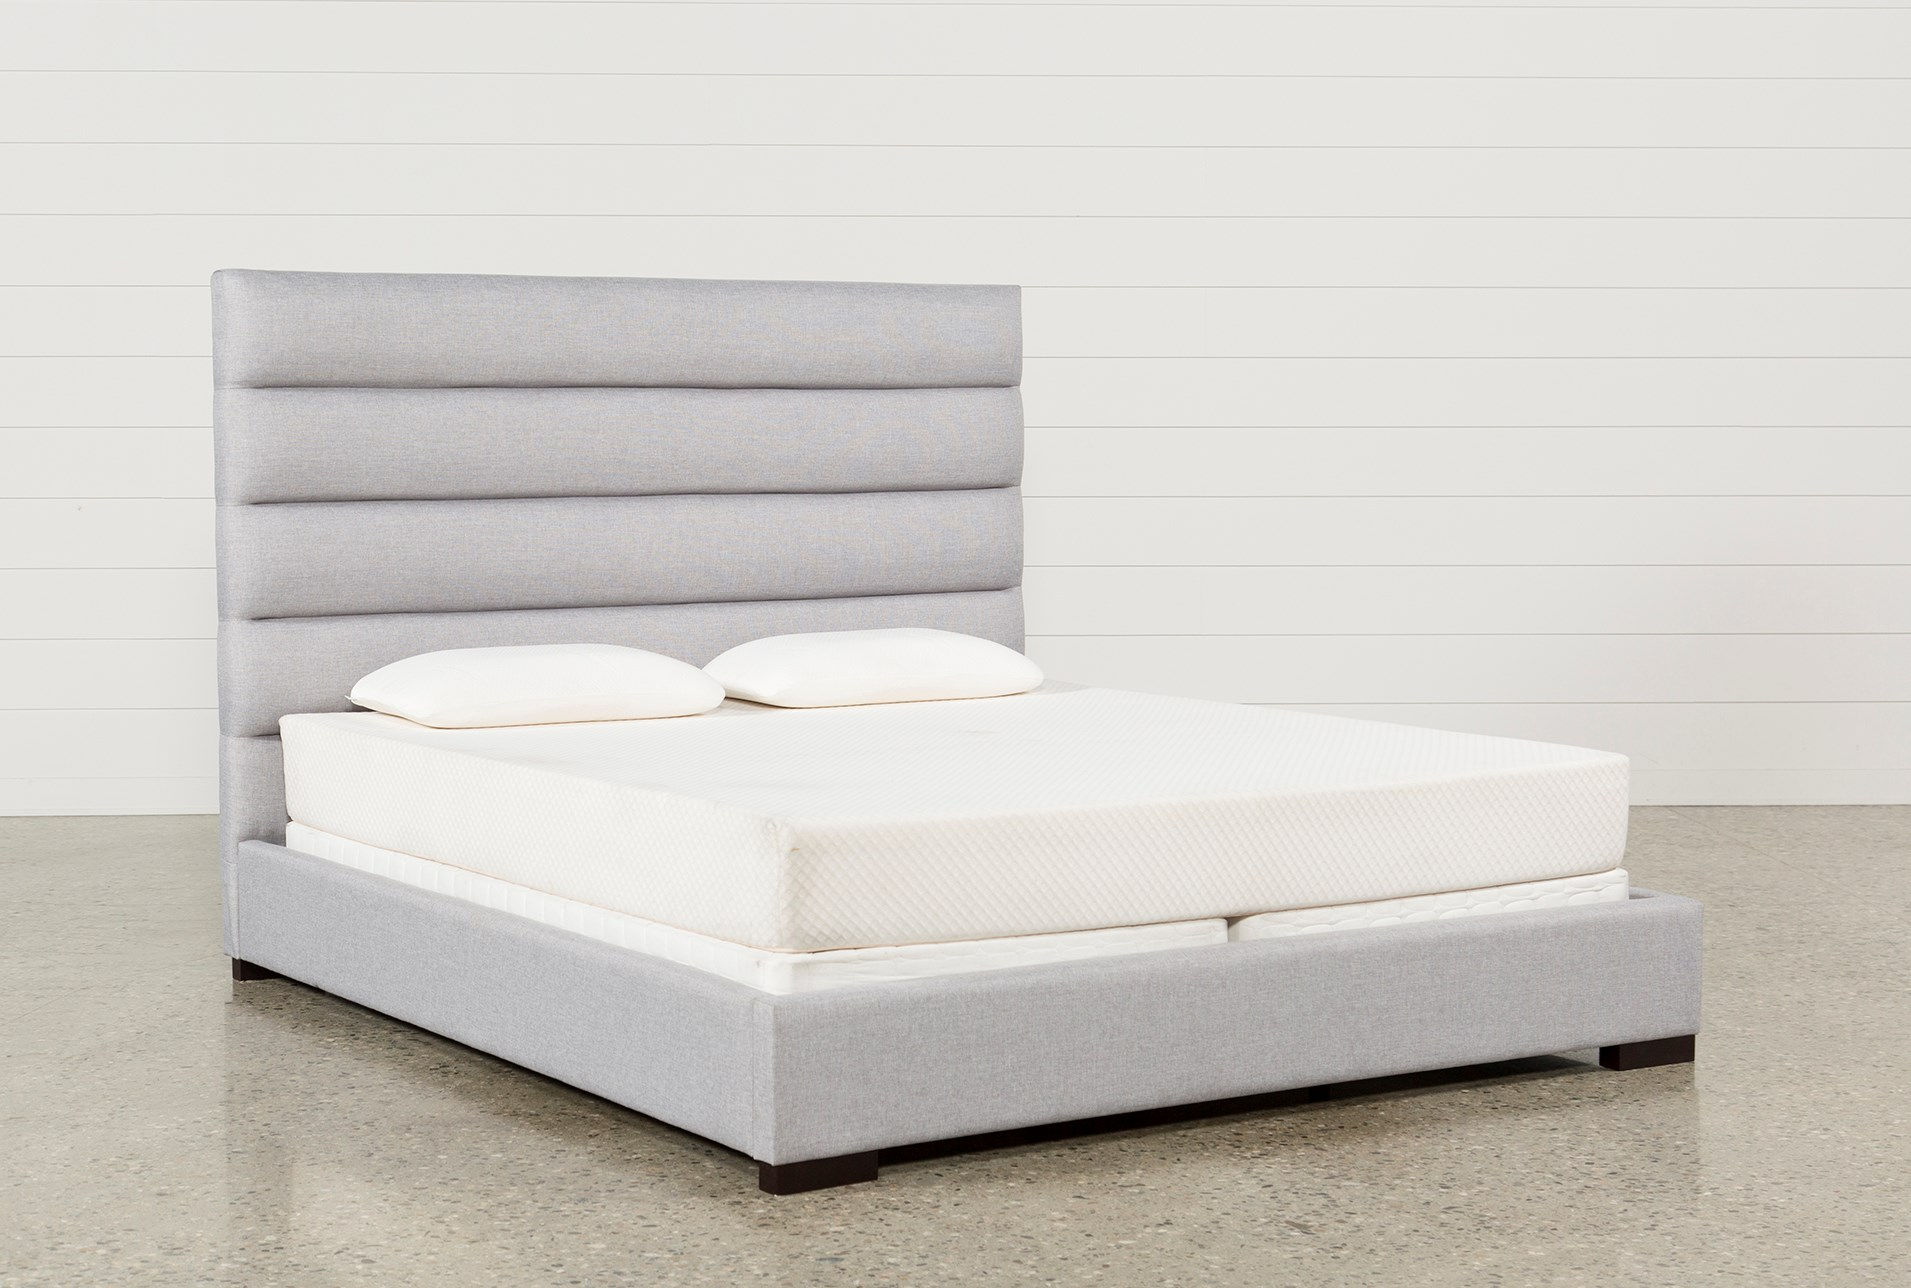 Hudson queen upholstered platform bed qty 1 has been successfully added to your cart